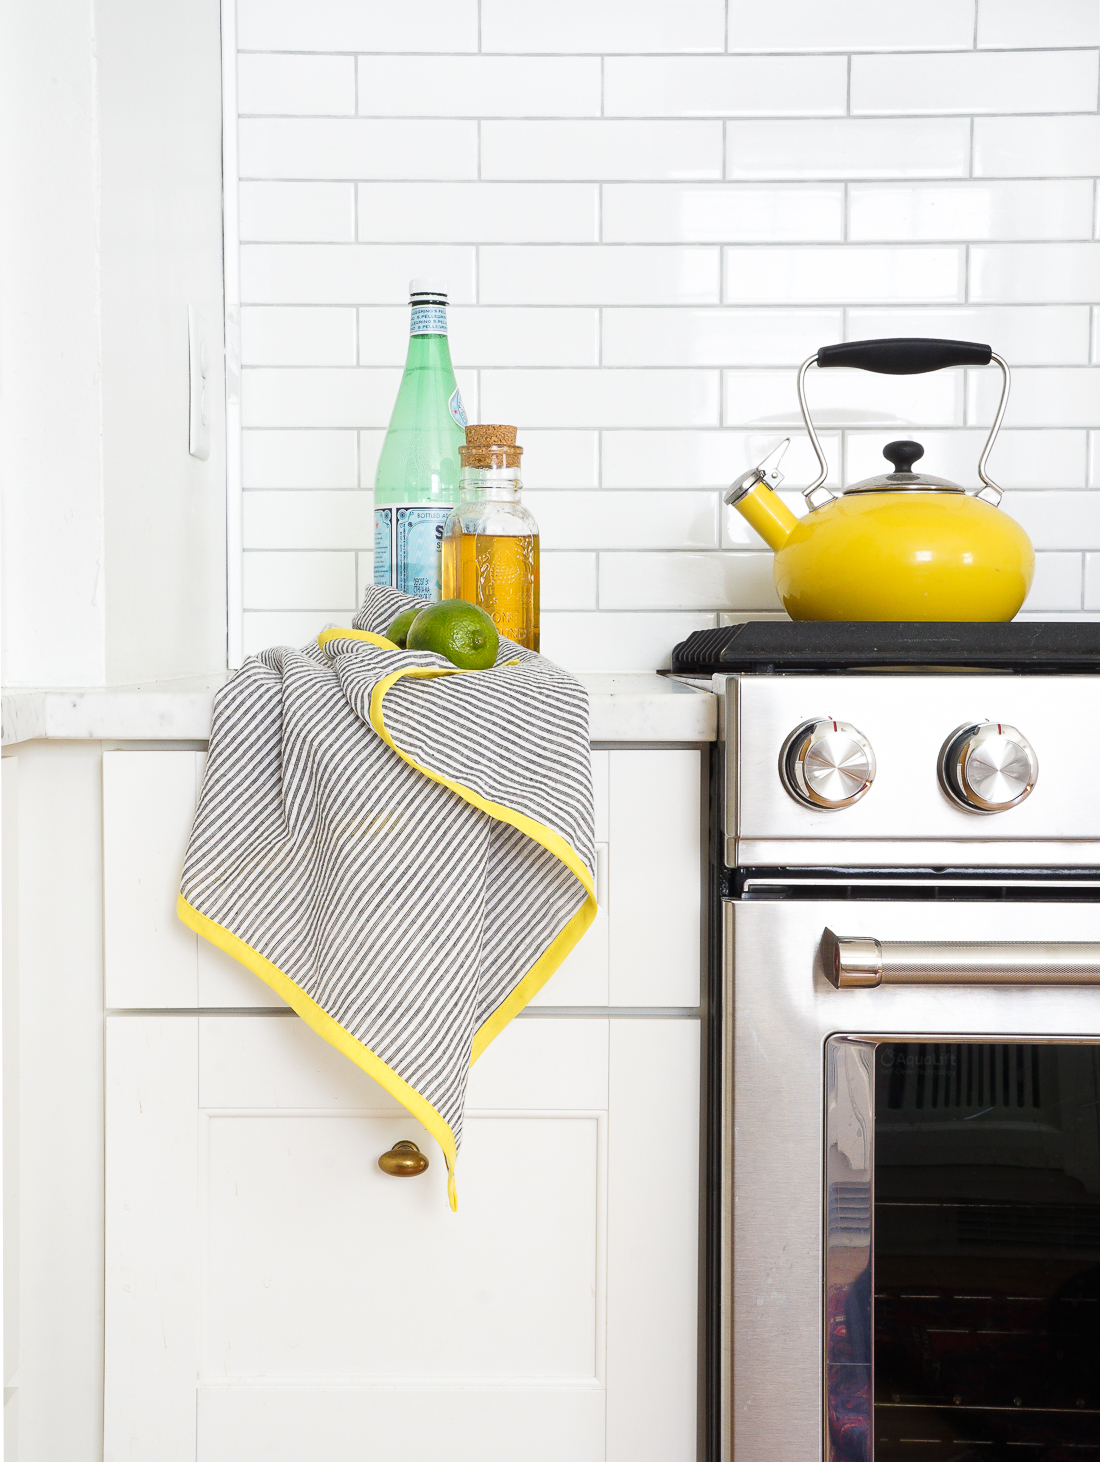 Learn how to make these colorful seersucker tea towels for your kitchen! Click to learn more!